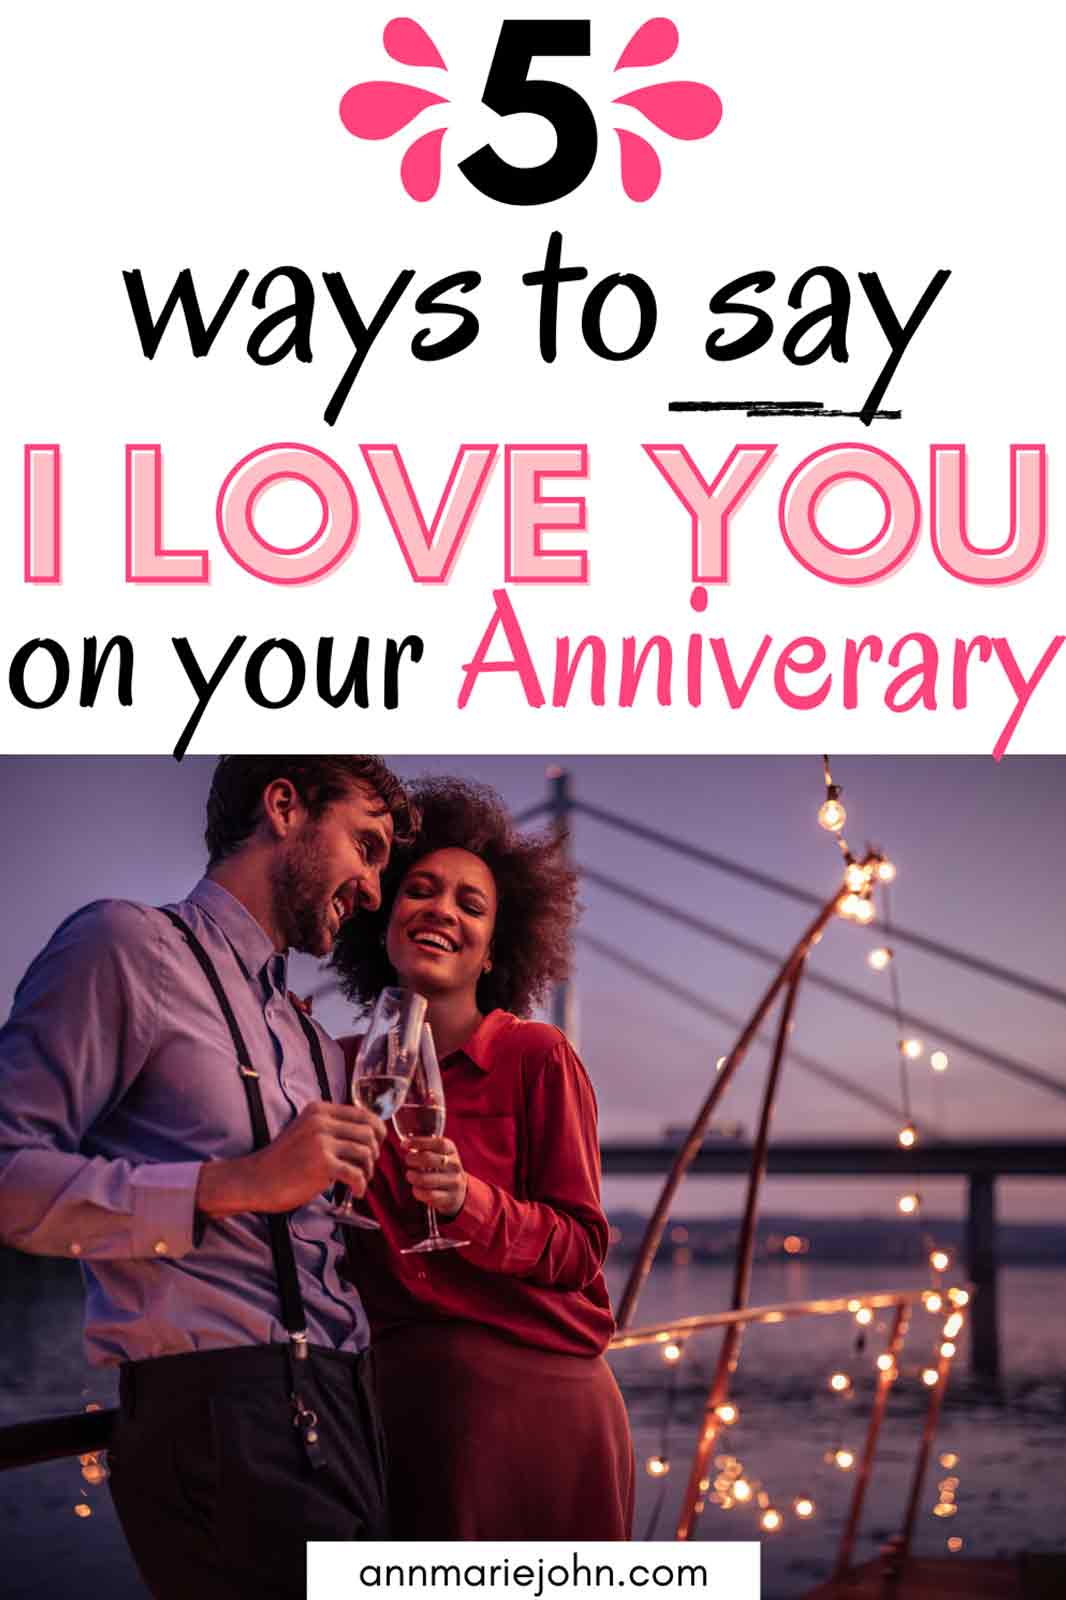 5 Ways to Say I Love You On Your Anniversary